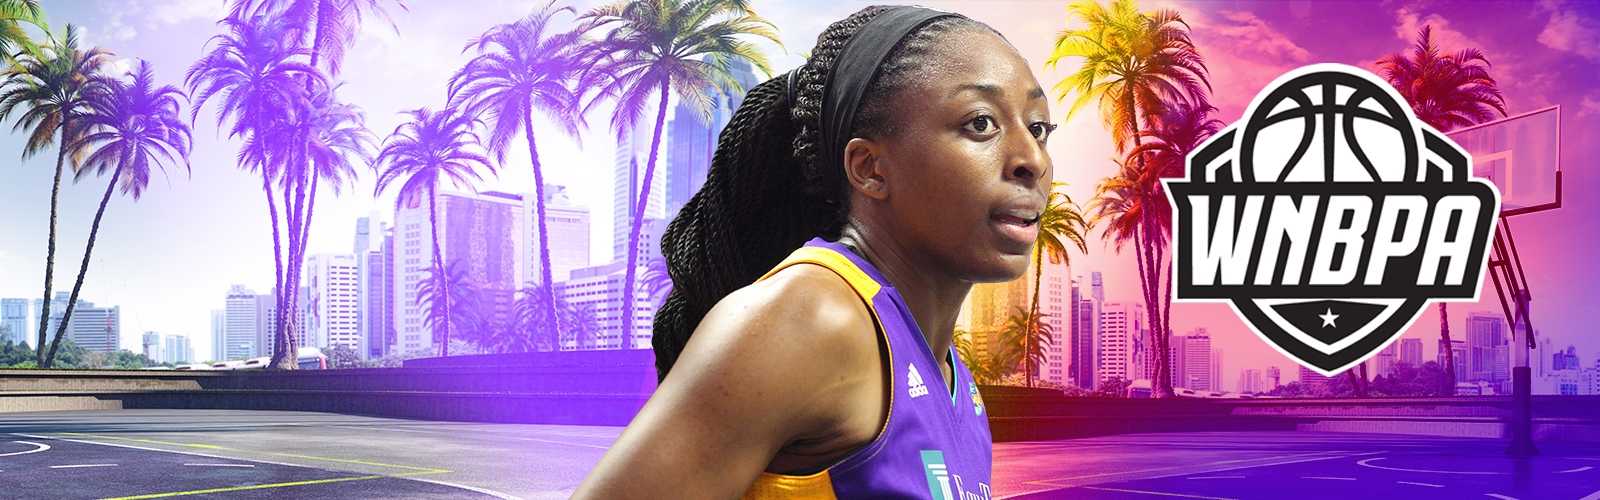 WNBA Community Organizing Is Strengthened By Its Strong Players' Union